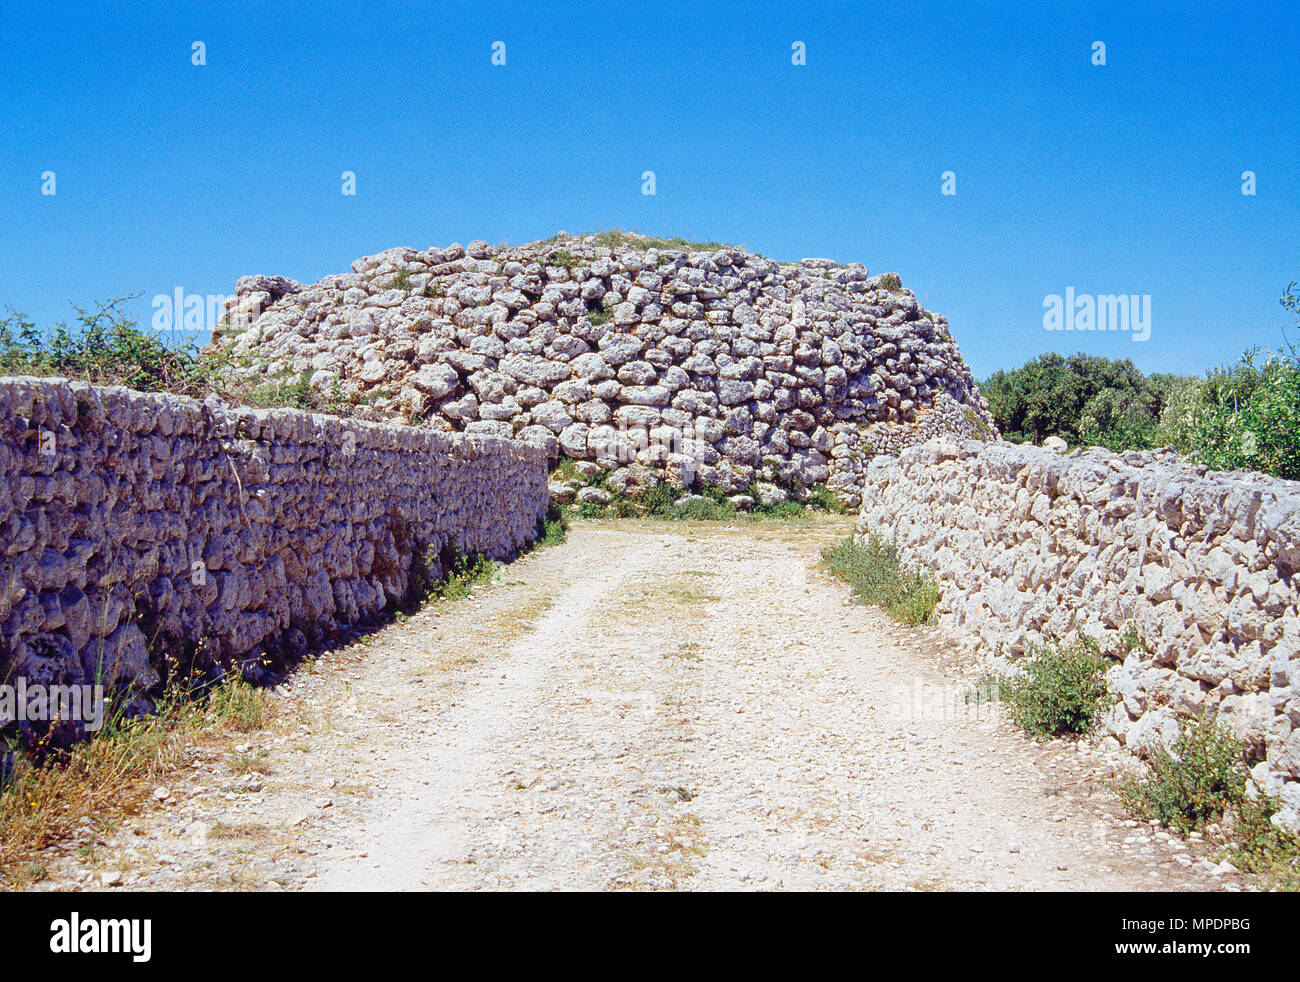 Talayot. Trepuco Archaeological Site, Mahon, Menorca, Balearic Islands, Spain. - Stock Image